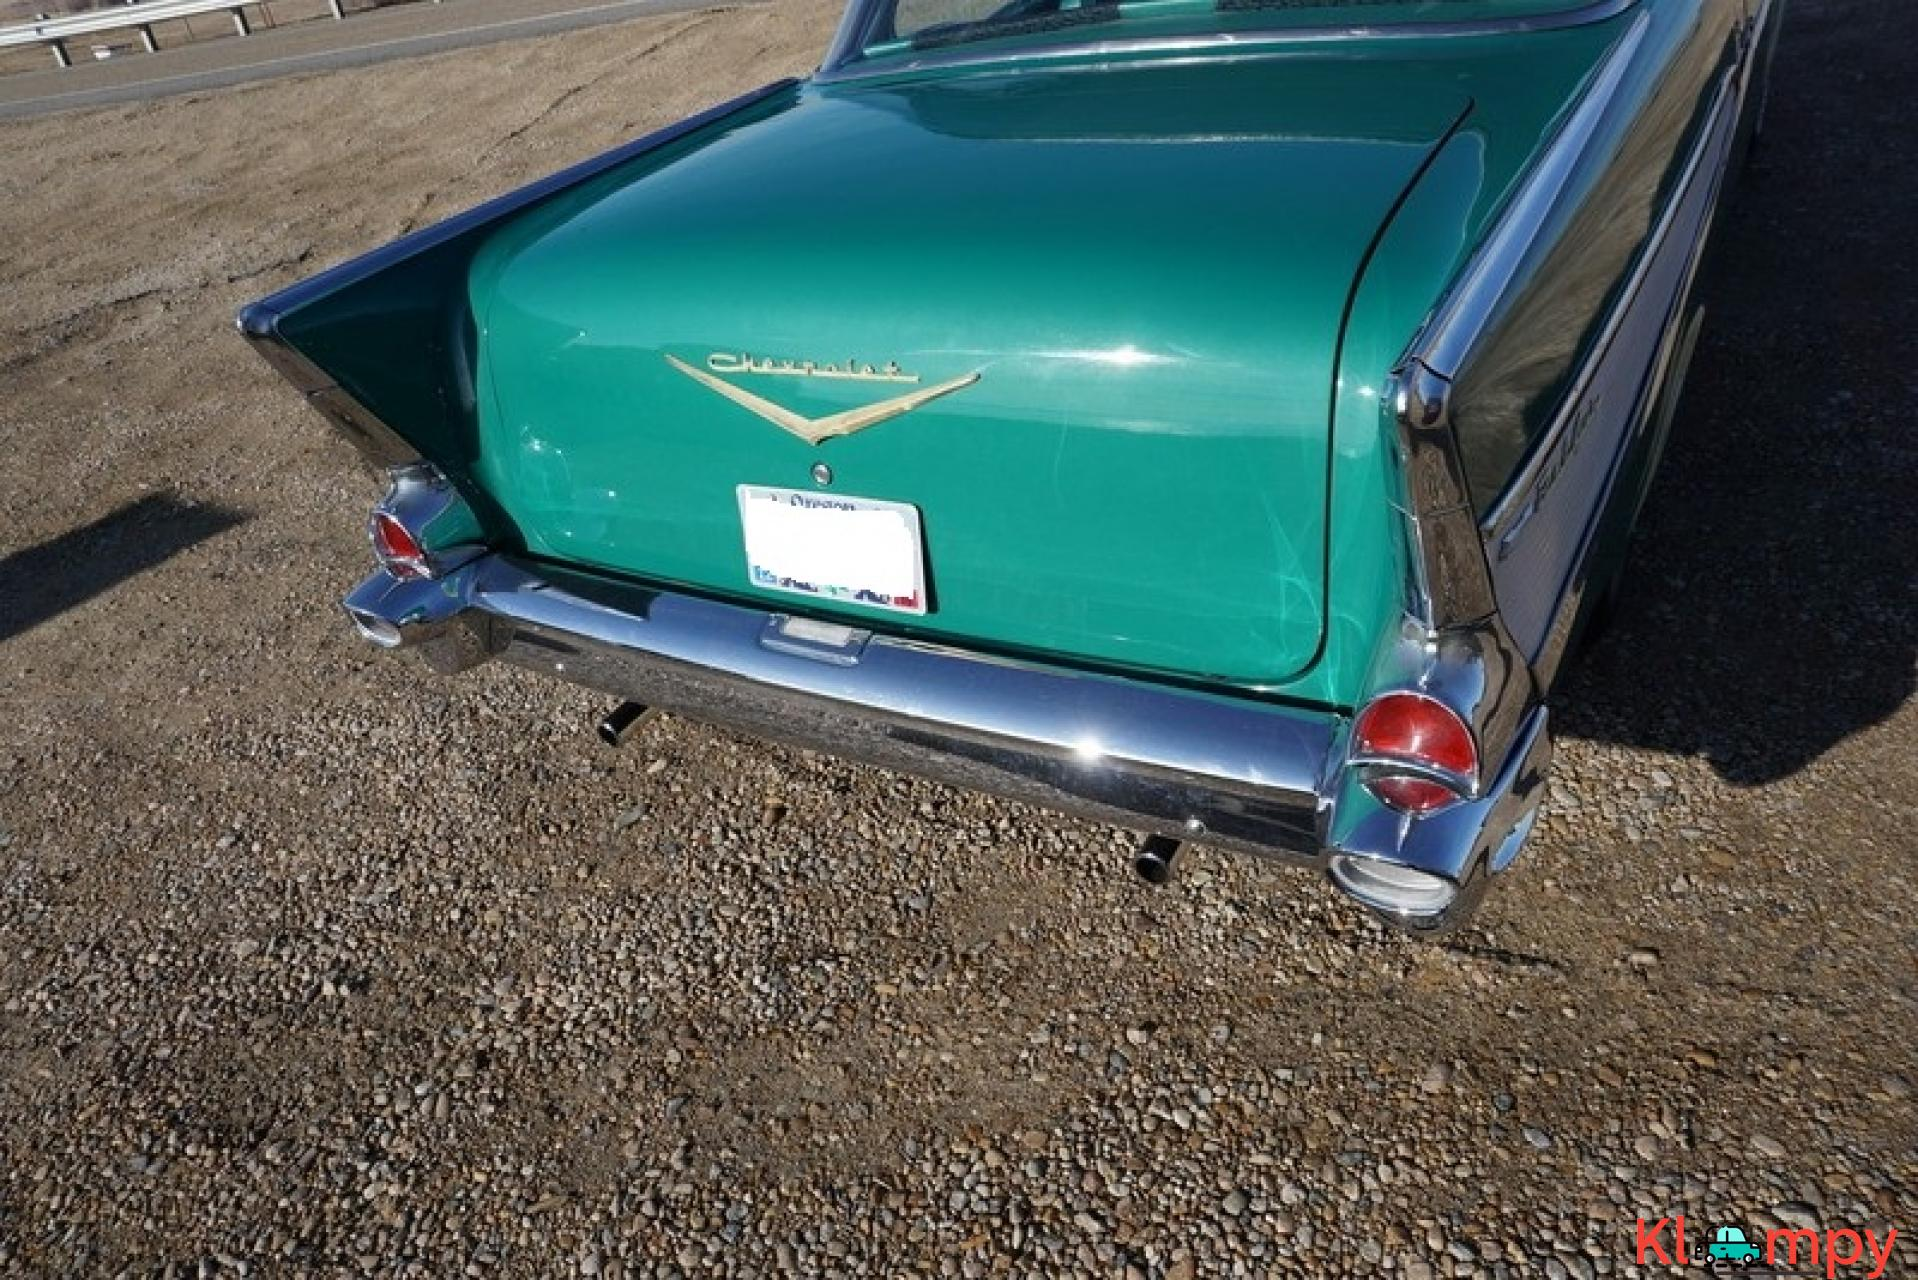 1957 Chevrolet Bel Air 150 210 Hardtop - 11/20